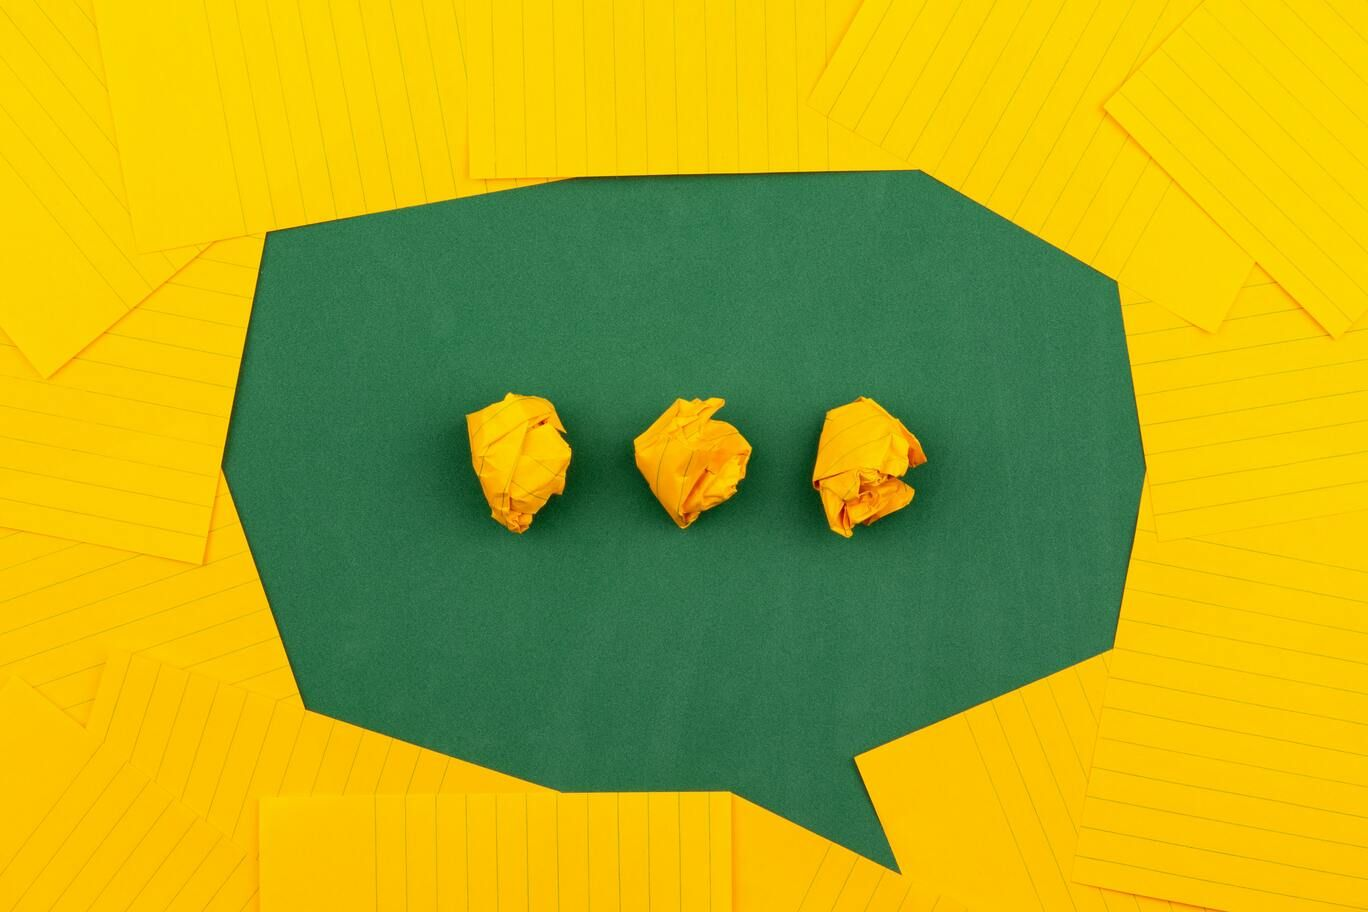 3 Communication and Collaboration Strategies to Use During Projects